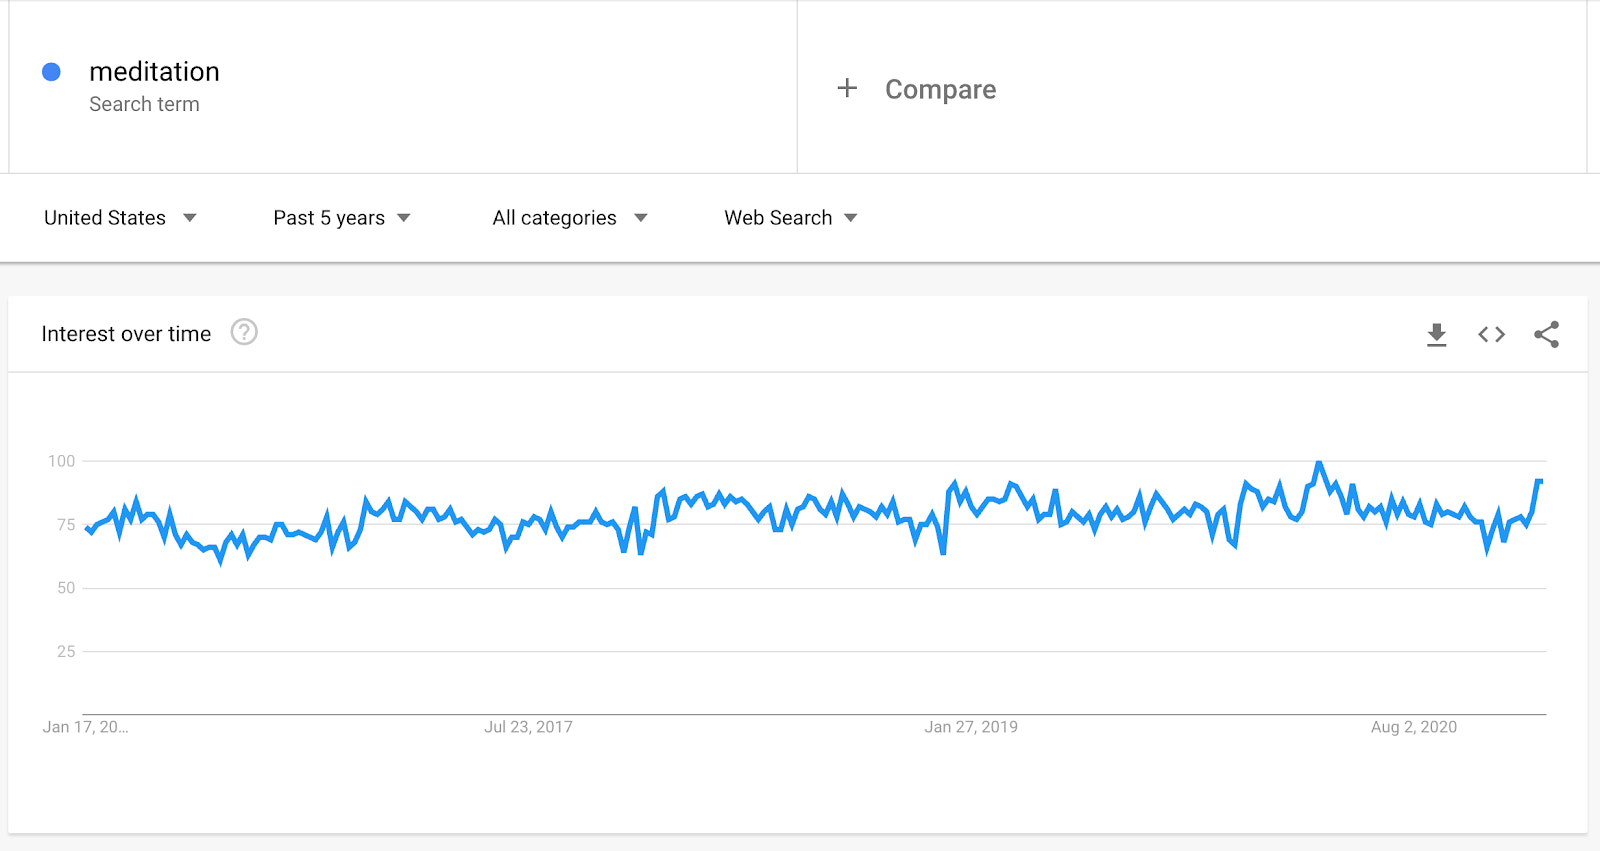 Google Trends search interest